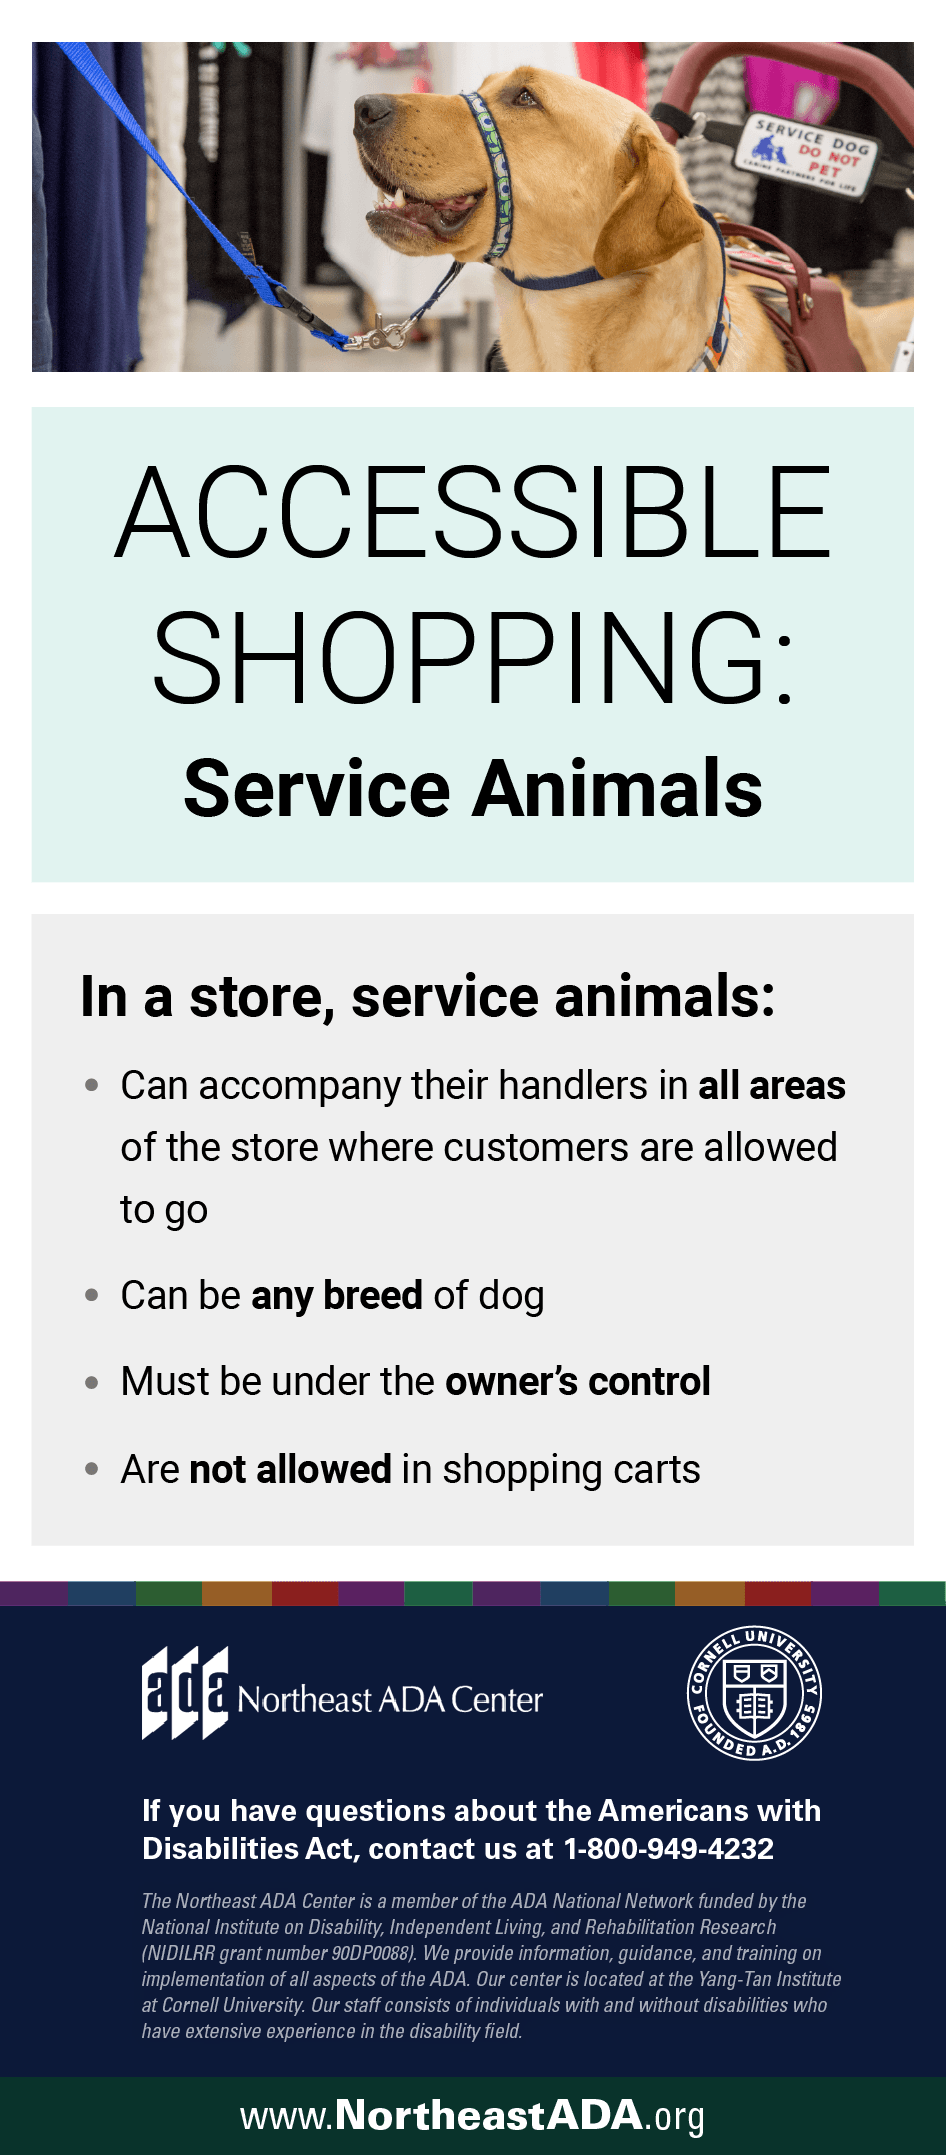 Infographic titled 'Accessible Shopping: Service Animals' featuring an image of a service dog on a leash.  In a store, service animals: Can accompany their handlers in all areas of the store where customers are allowed to go. Can be any breed of dog. Must be under the owner's control. Are not allowed in shopping carts.  If you have questions about the Americans with Disabilities Act, contact us at 1-800-949-4232